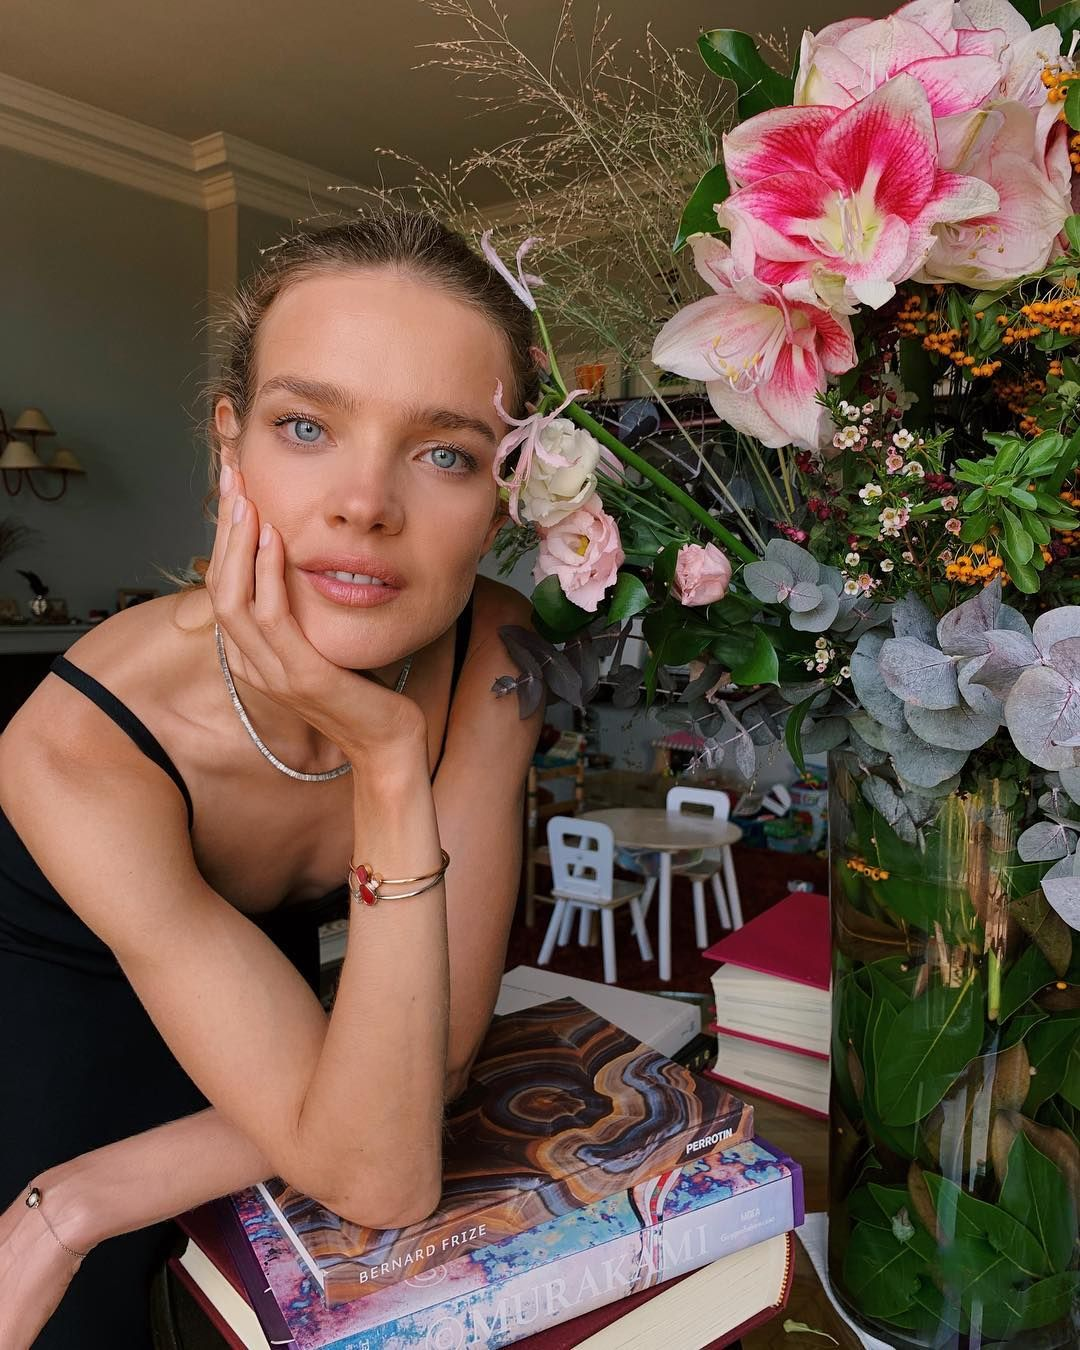 Beauty writer Tanya Akim shares her traditional Russian beauty